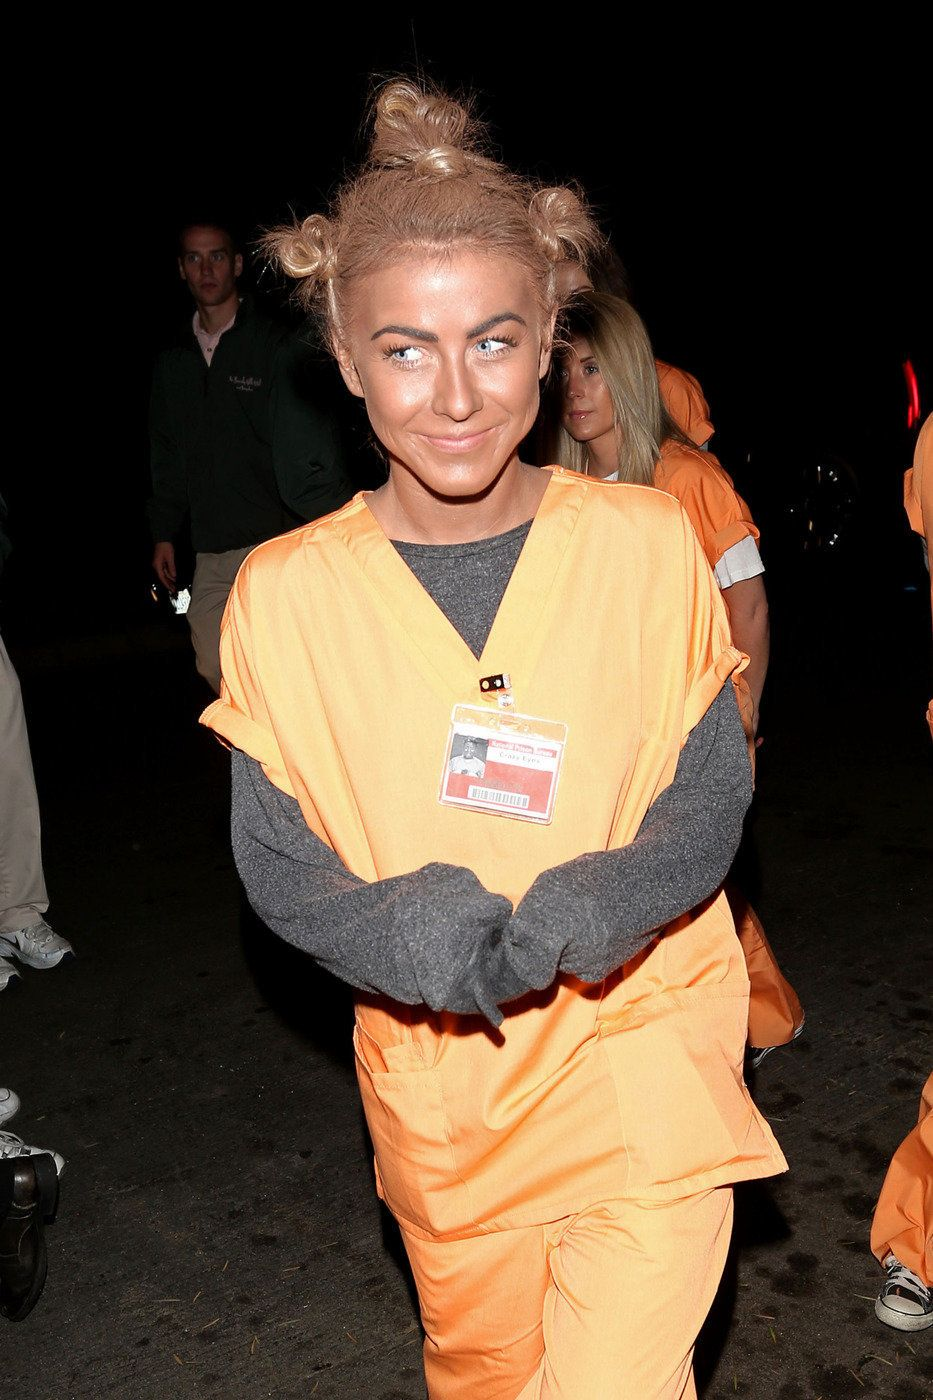 sc 1 st  HuffPost & These Are The Most Controversial Celebrity Halloween Costumes | HuffPost